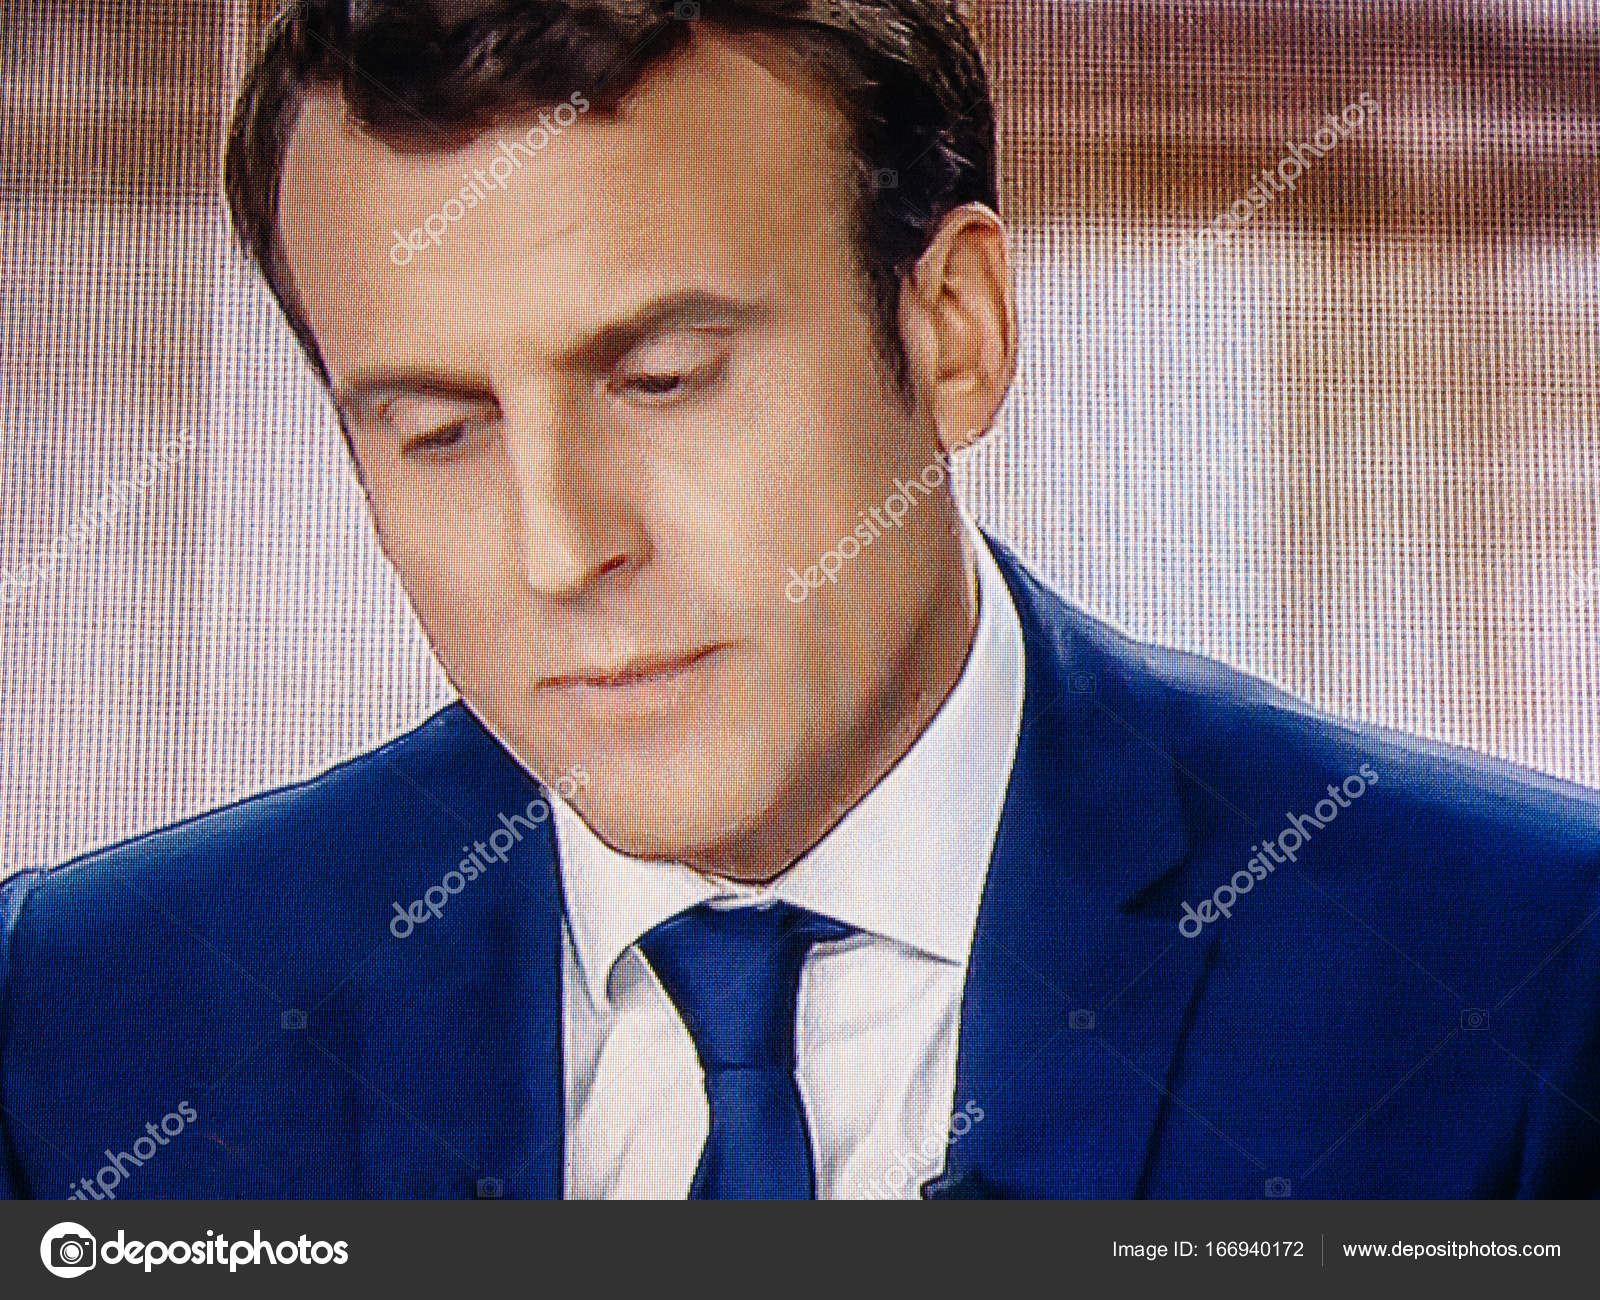 Emmanuel Macro debating live at French television with Marine Le